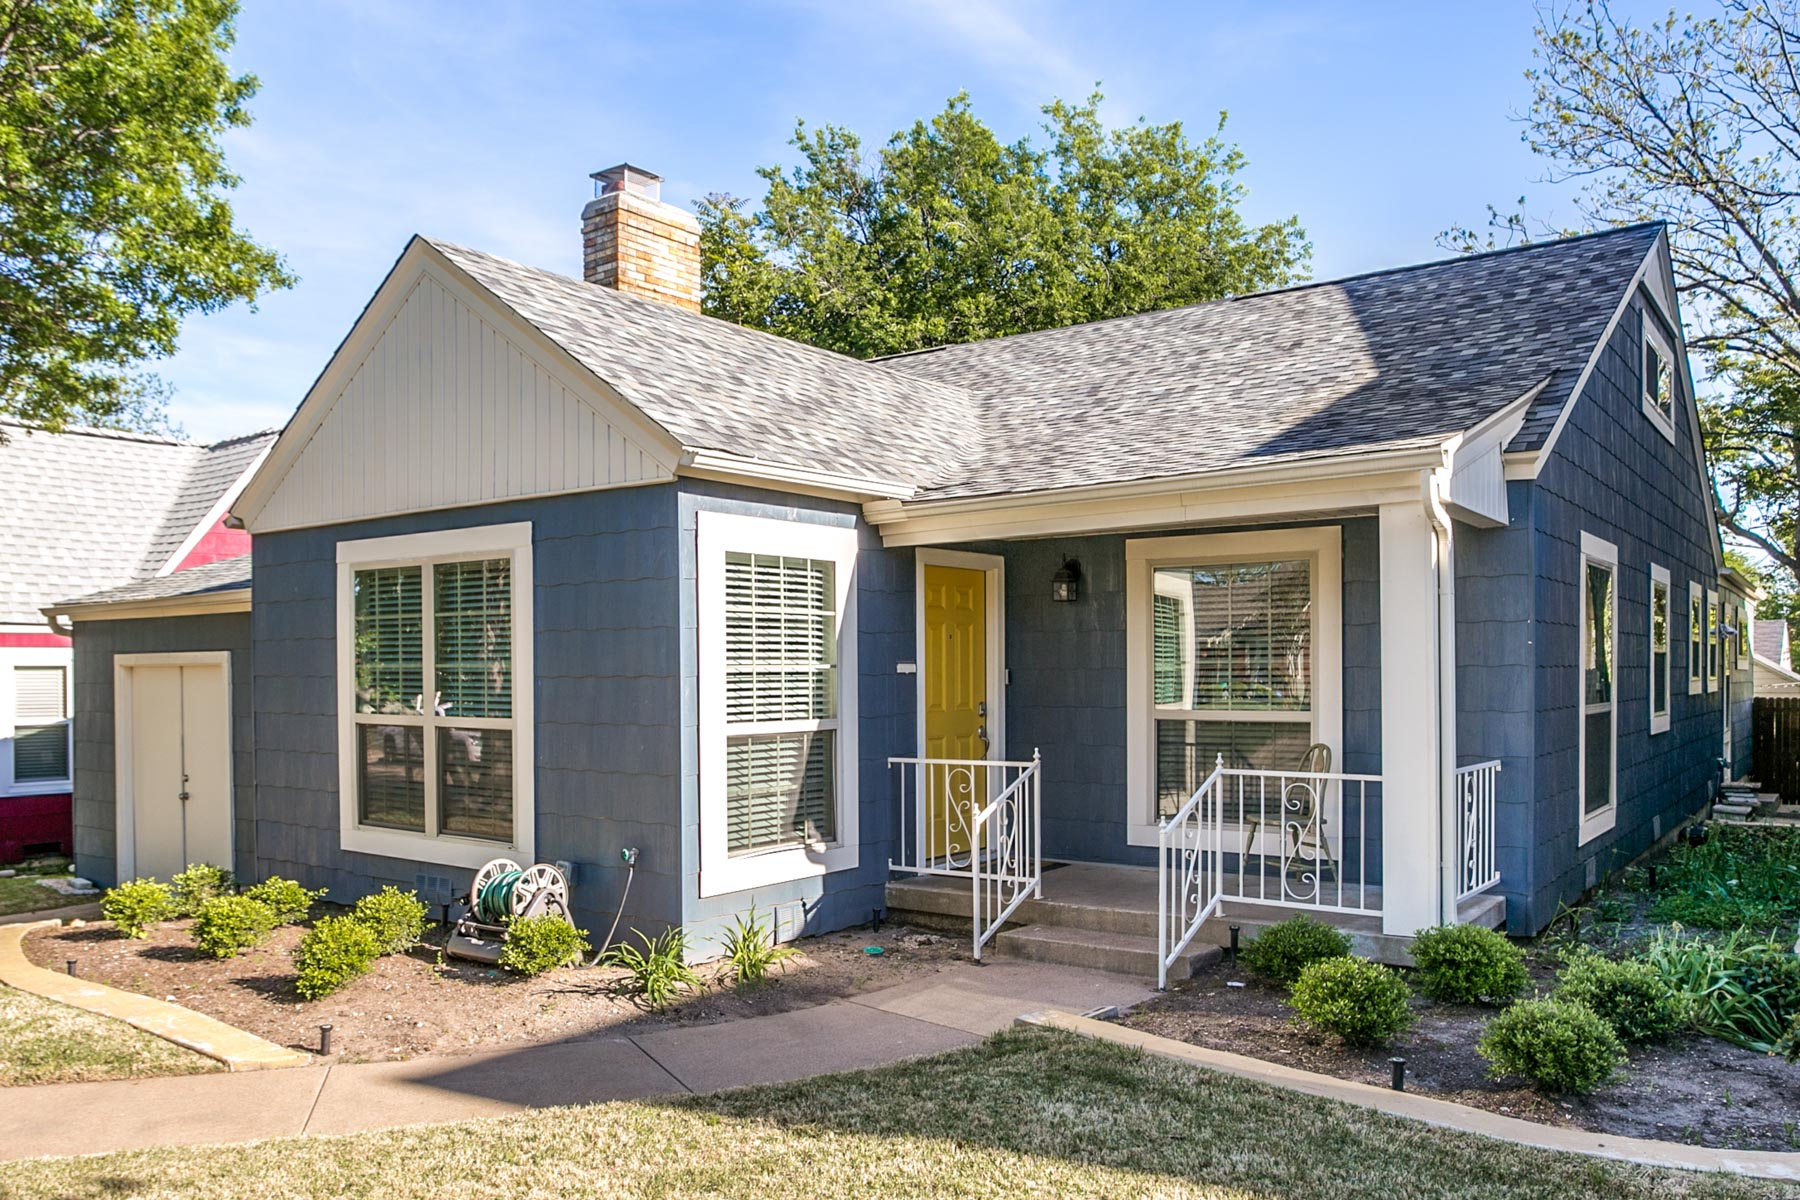 Single Family Home for Sale at 4033 Pershing Ave 4033 Pershing Ave., Fort Worth, Texas, 76107 United States